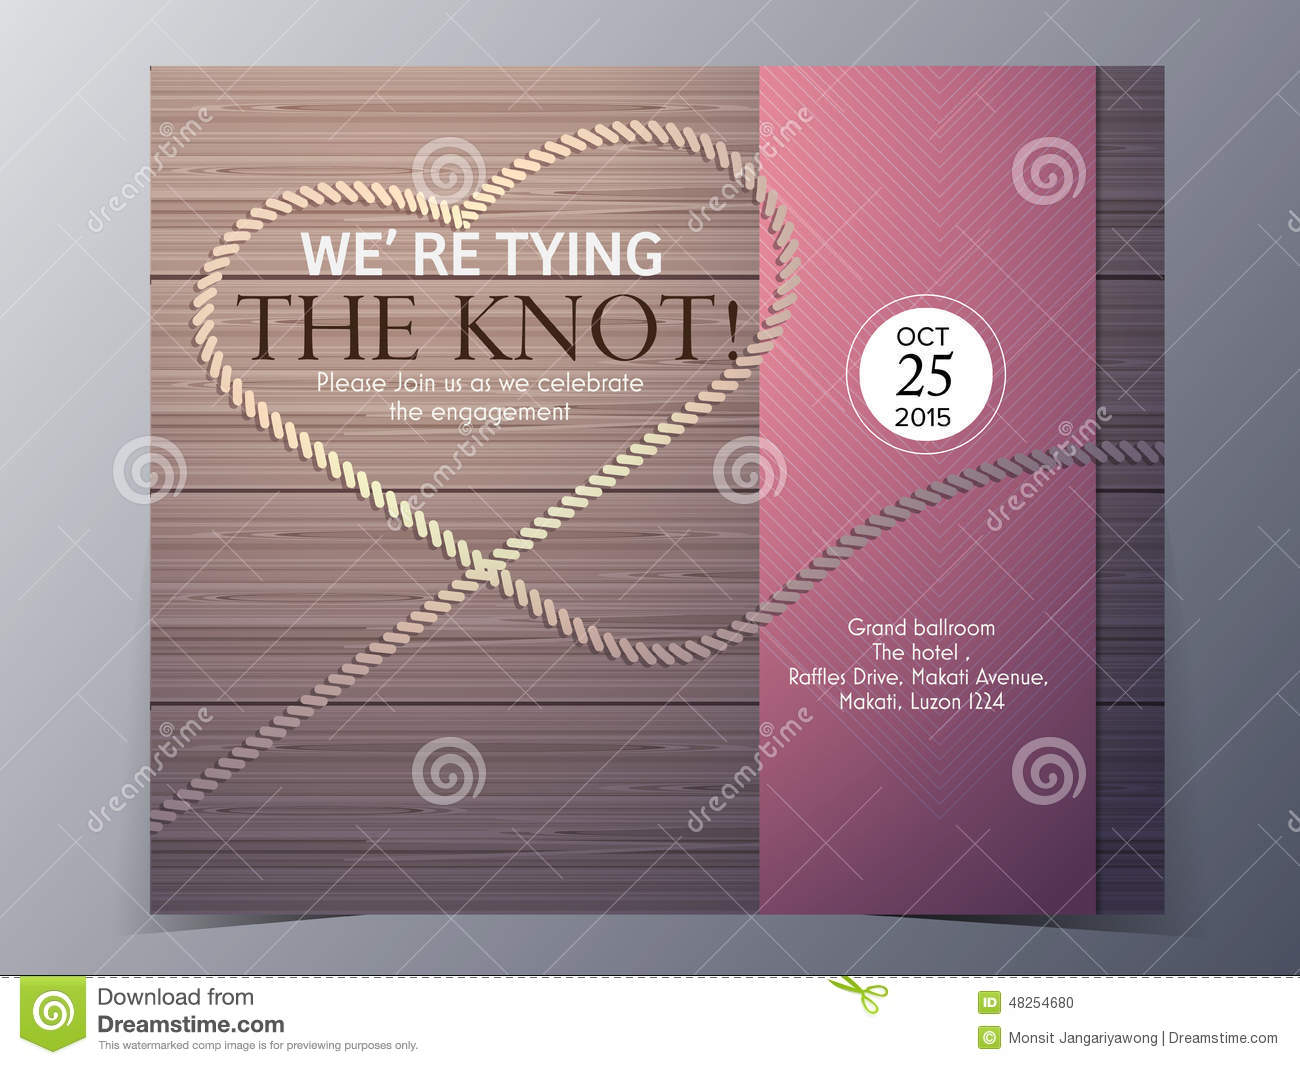 Tie the knot concept wedding invitation card vector template stock tie the knot concept wedding invitation card vector template stopboris Choice Image